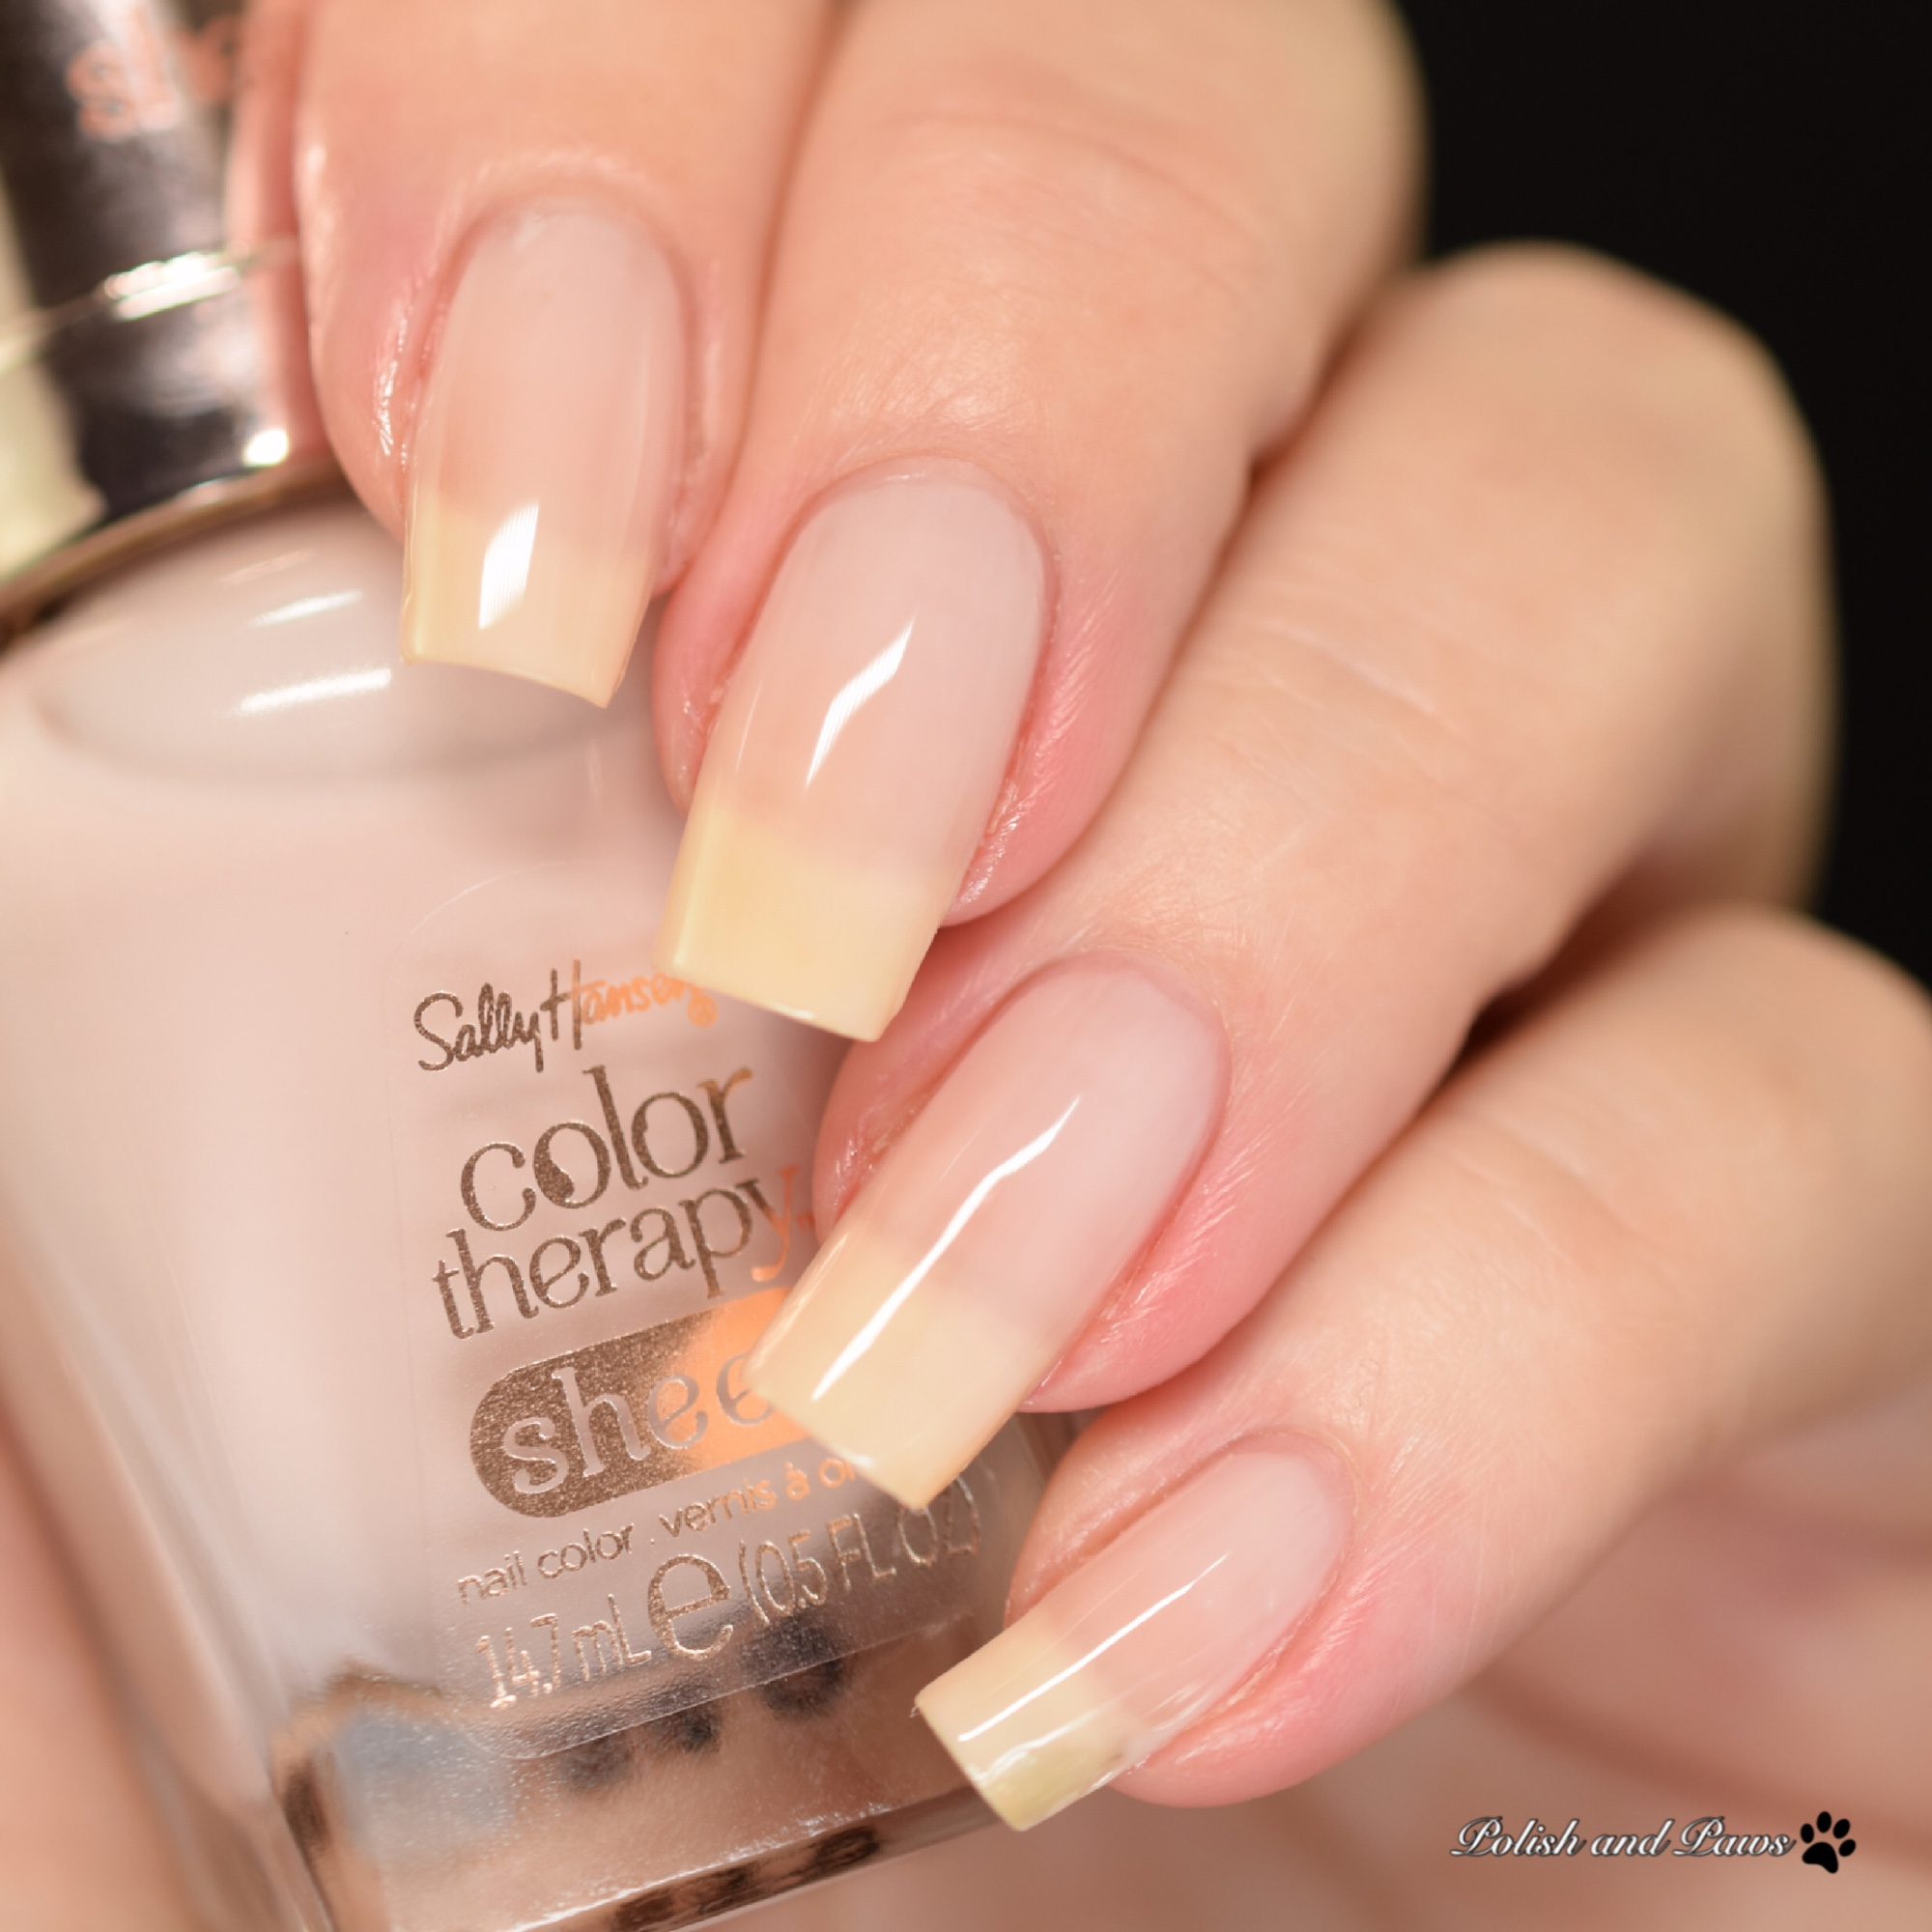 Sally Hansen Color Therapy Bare Kiss